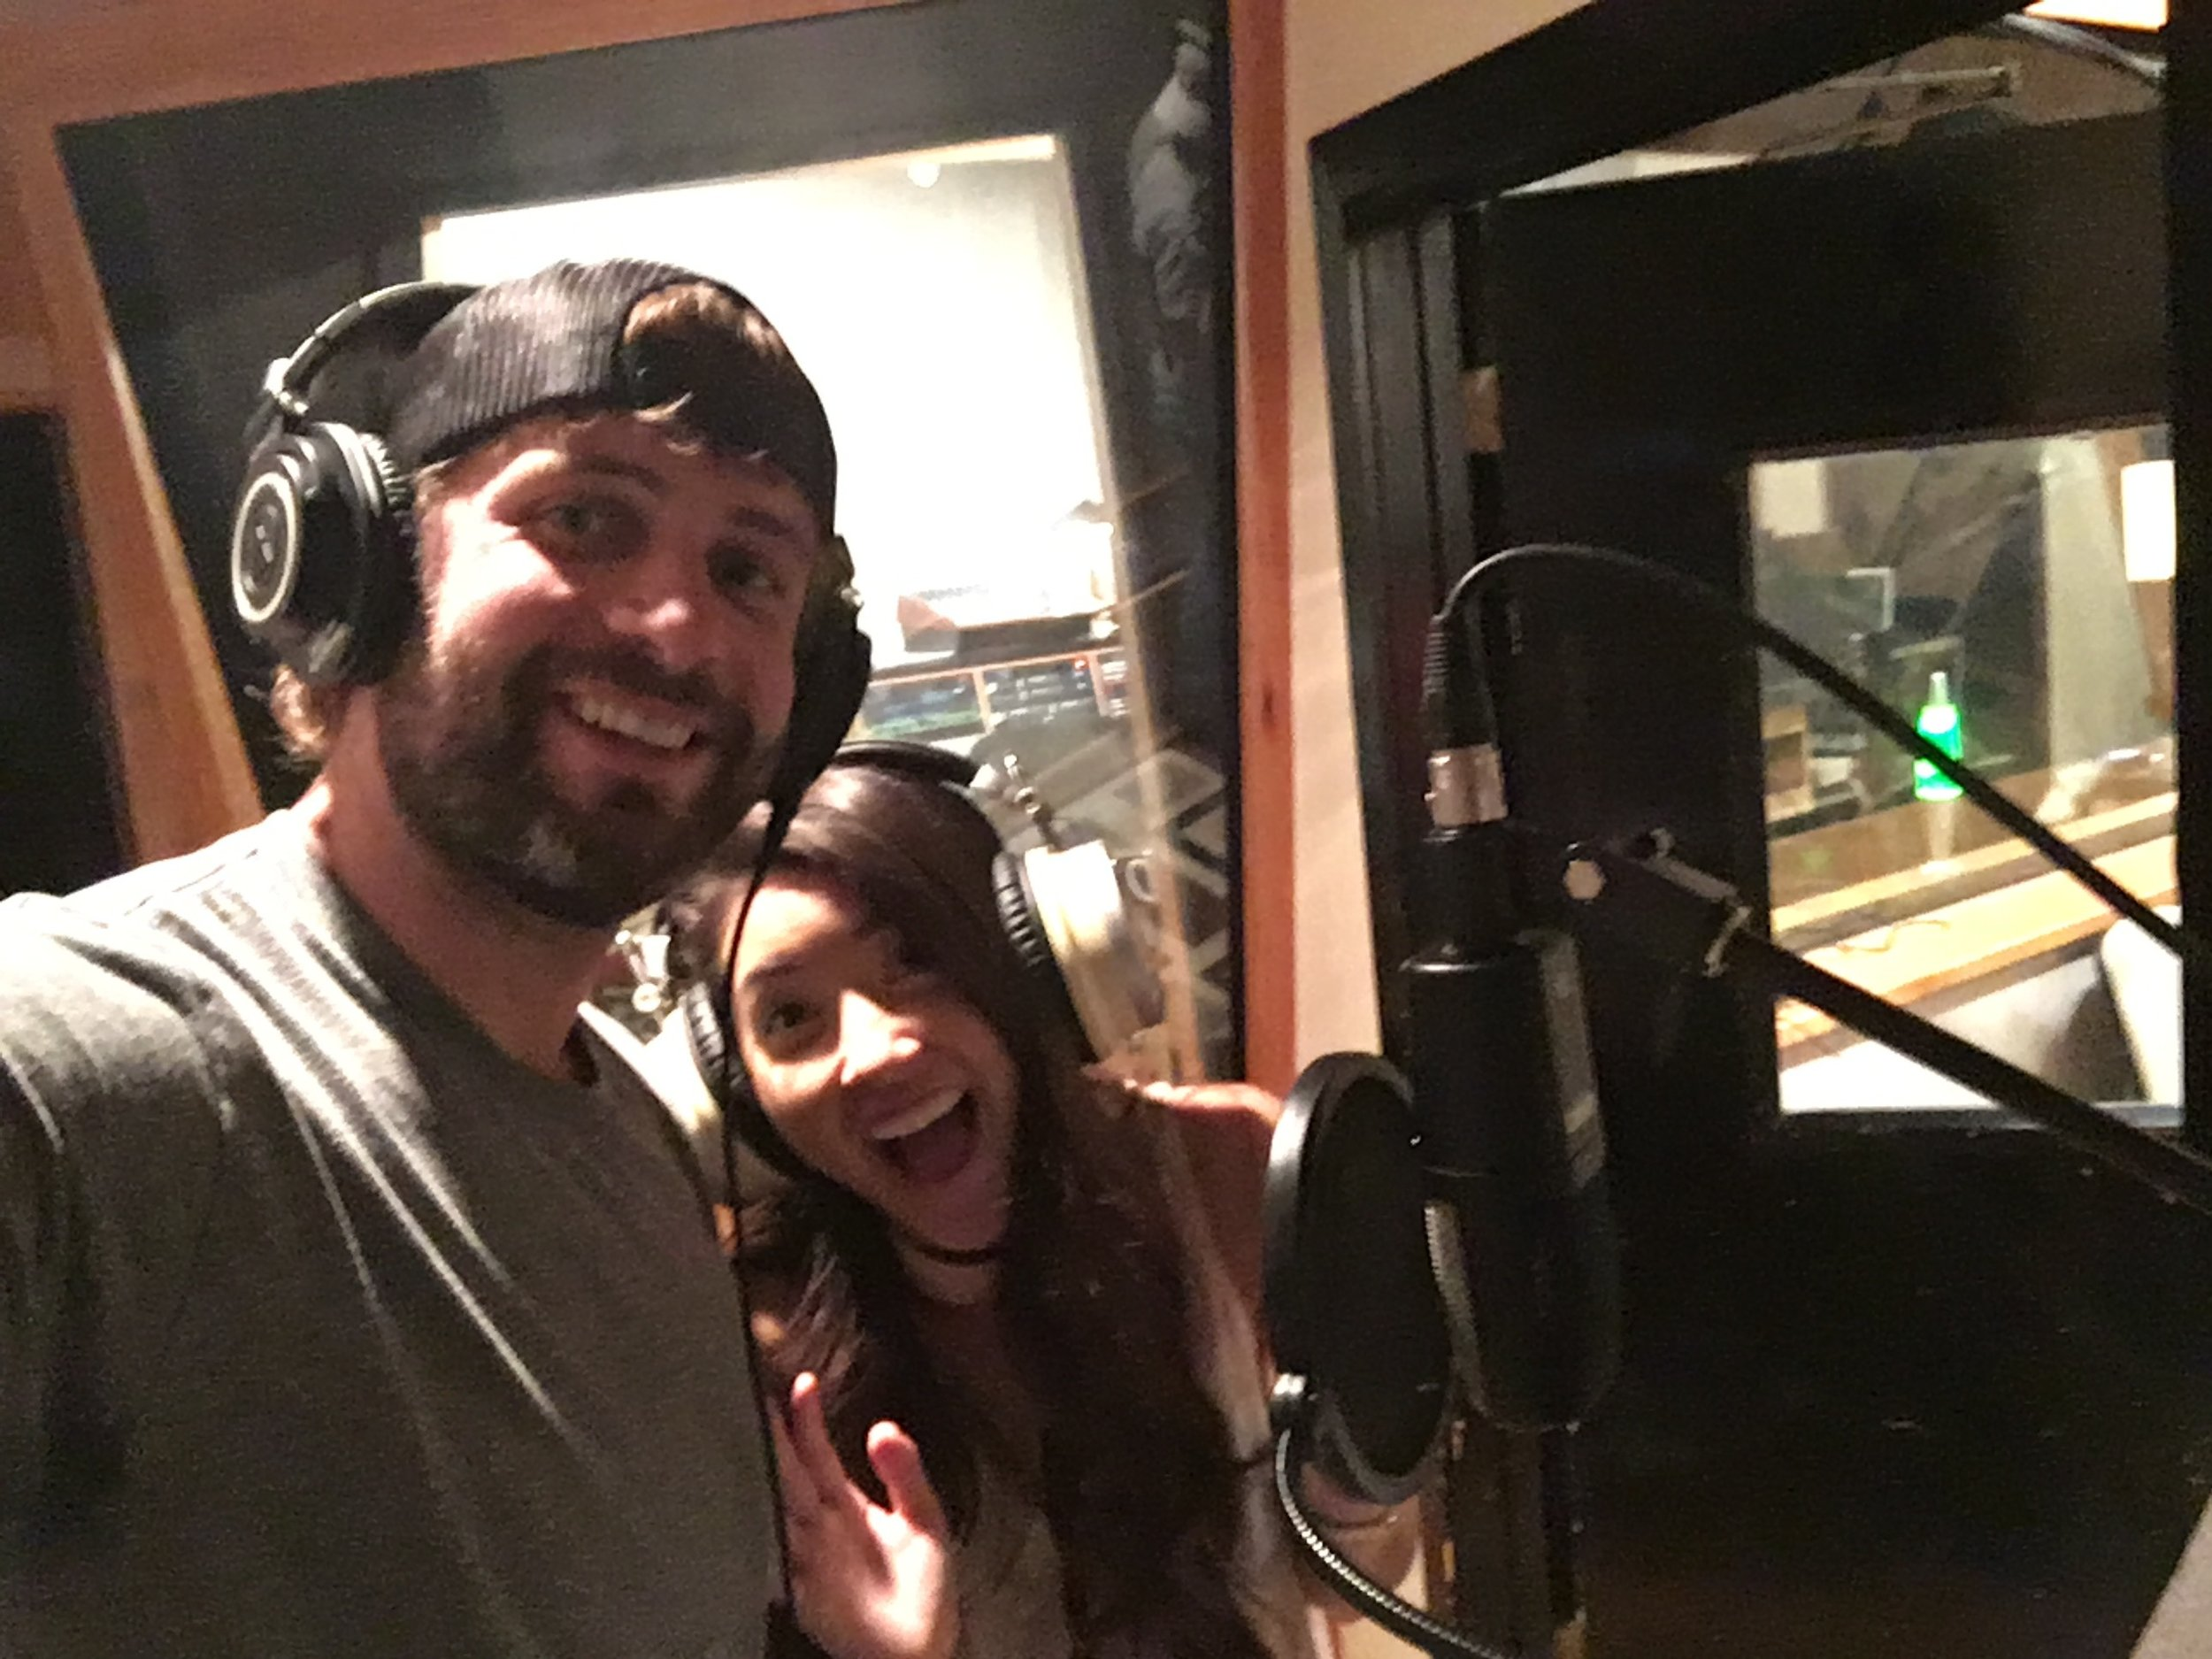 Tasji and I recording vocals in the studio